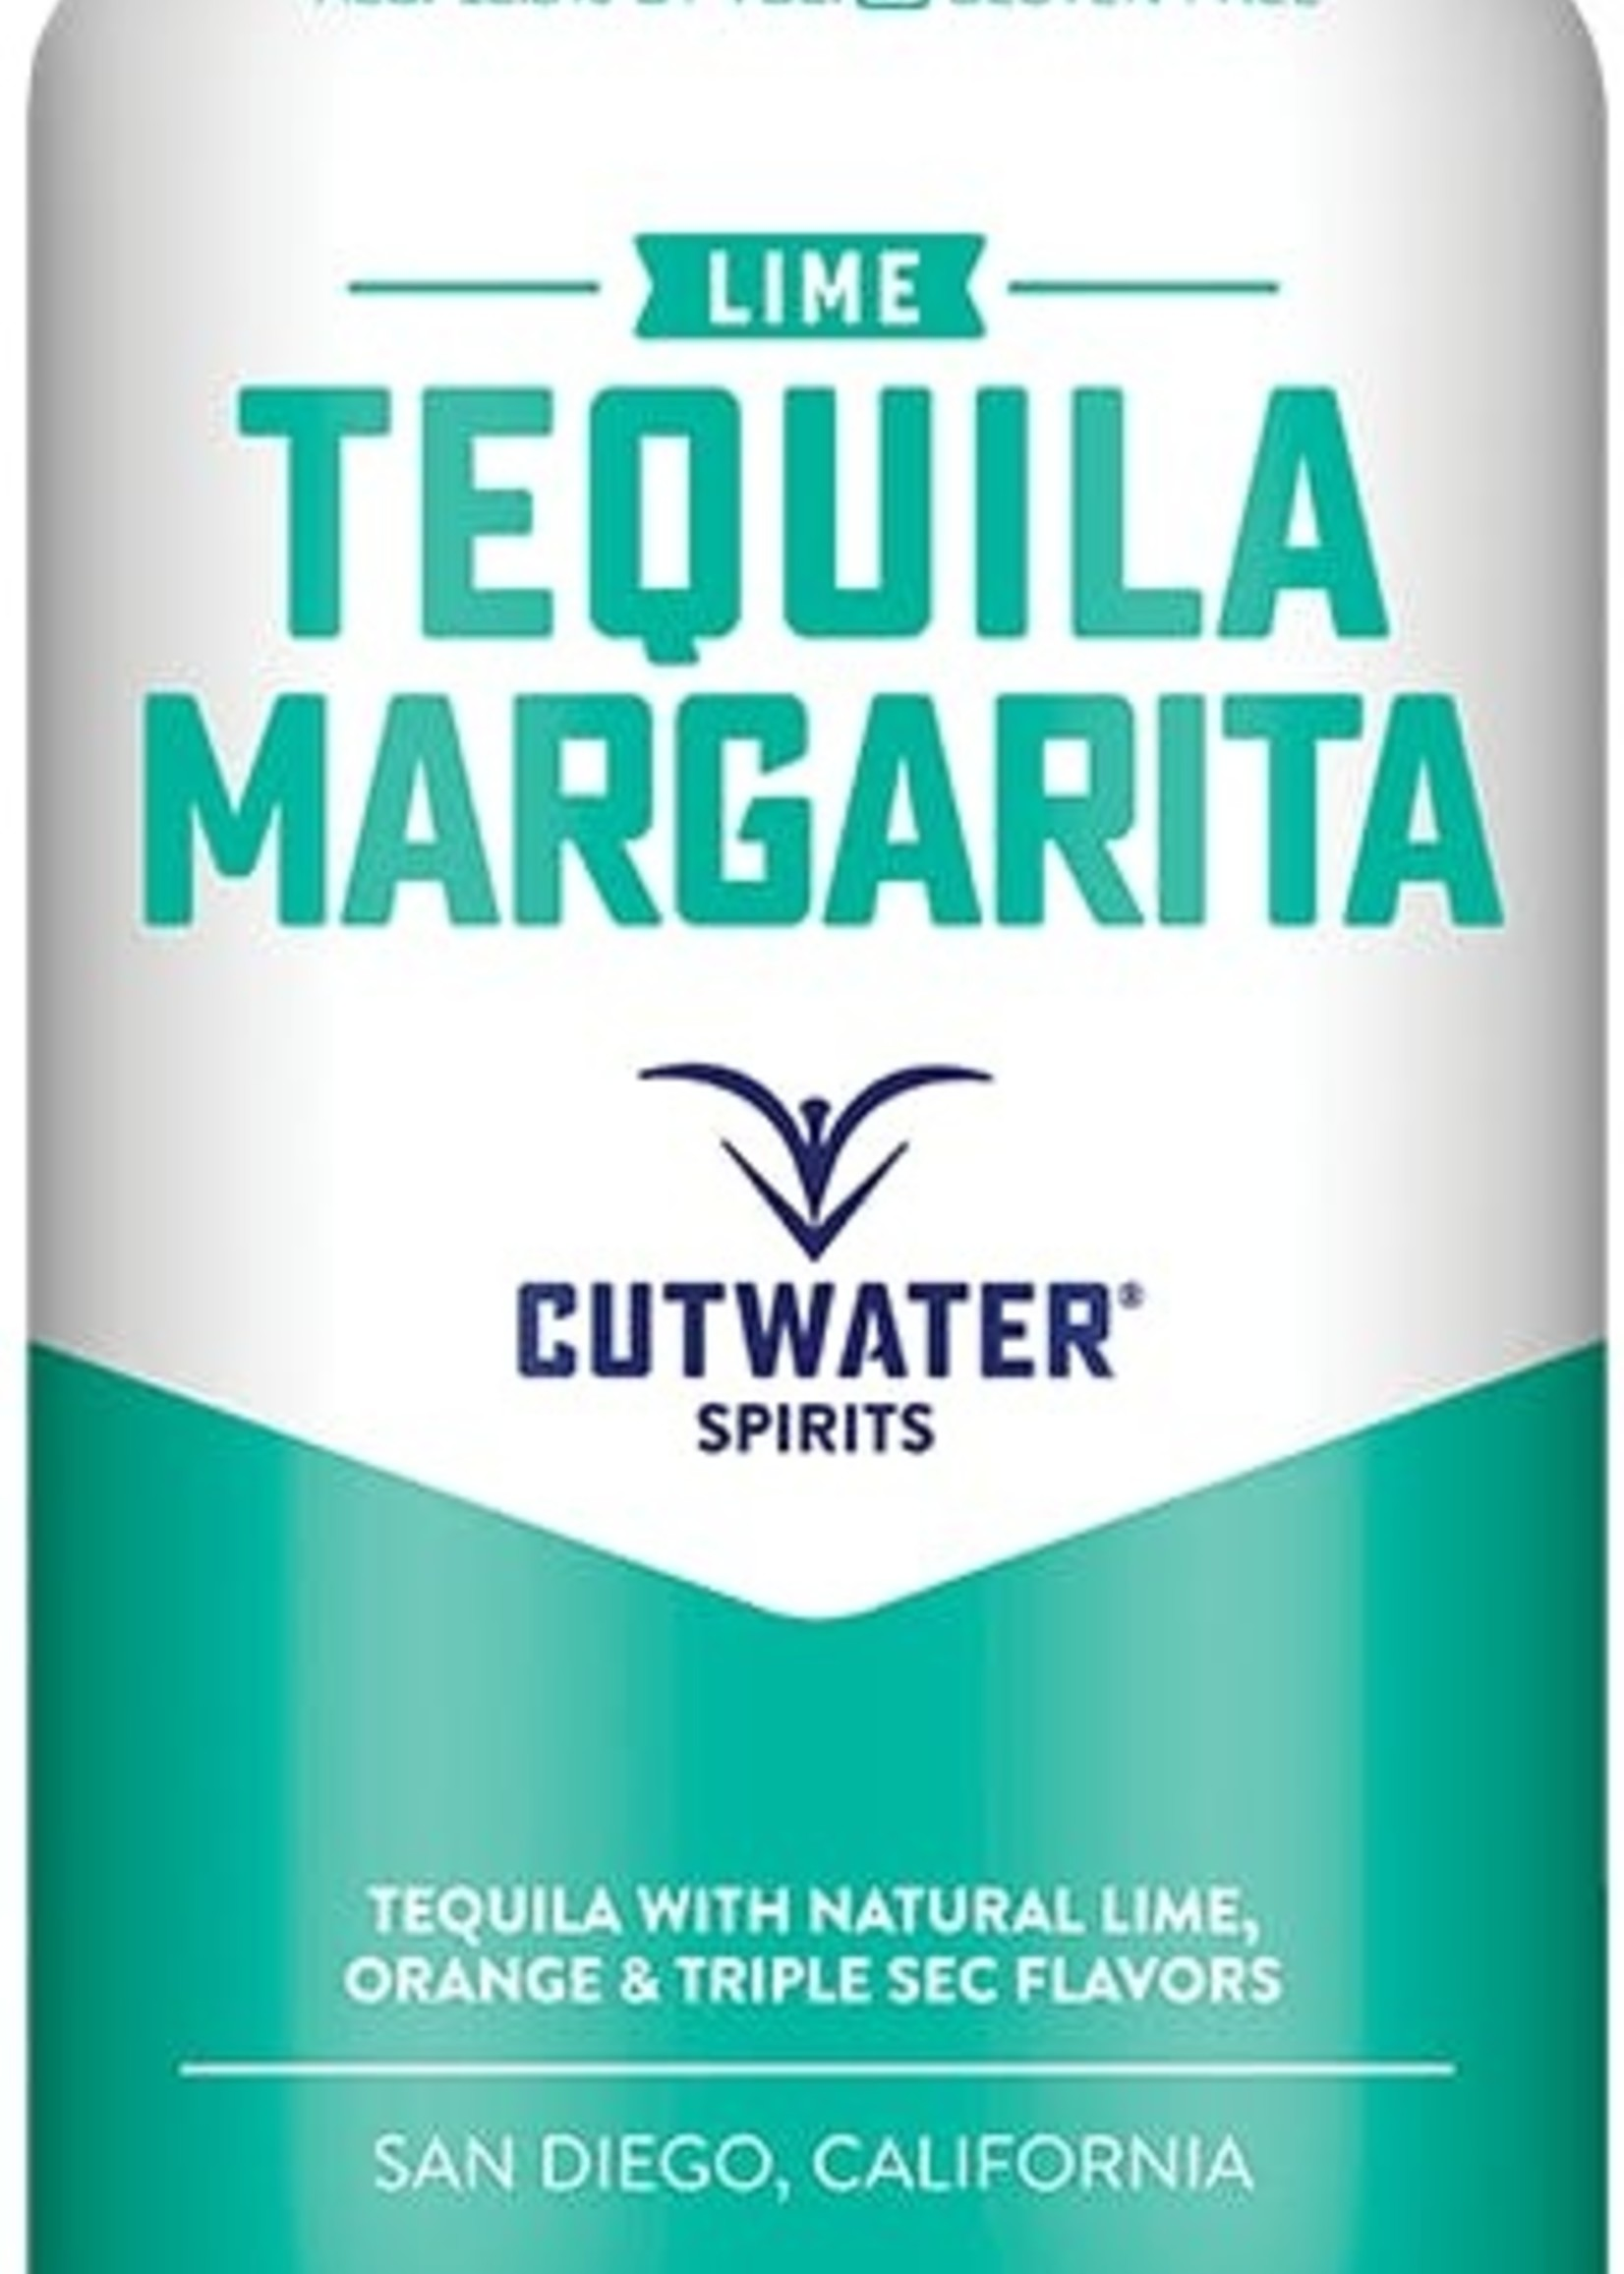 Cutwater Lime Tequila Margherita- 4x12oz Cans